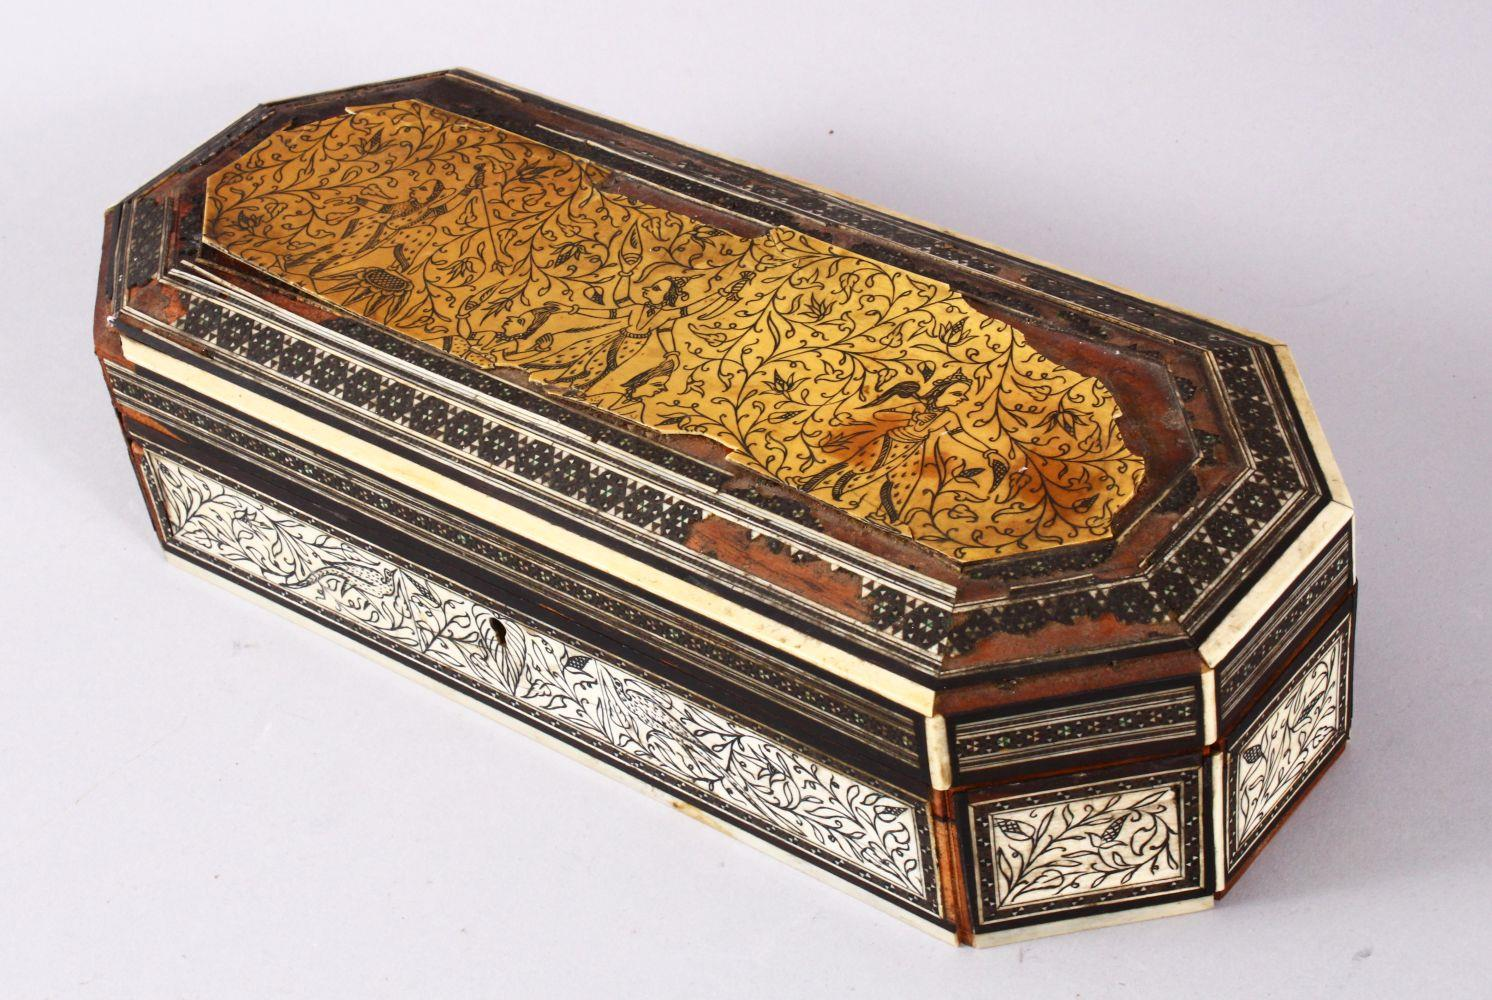 AN 18TH CENTURY INDIAN GOA INLAID IVORY LIDDED BOX, the box with a top ivory inlaid slither carved